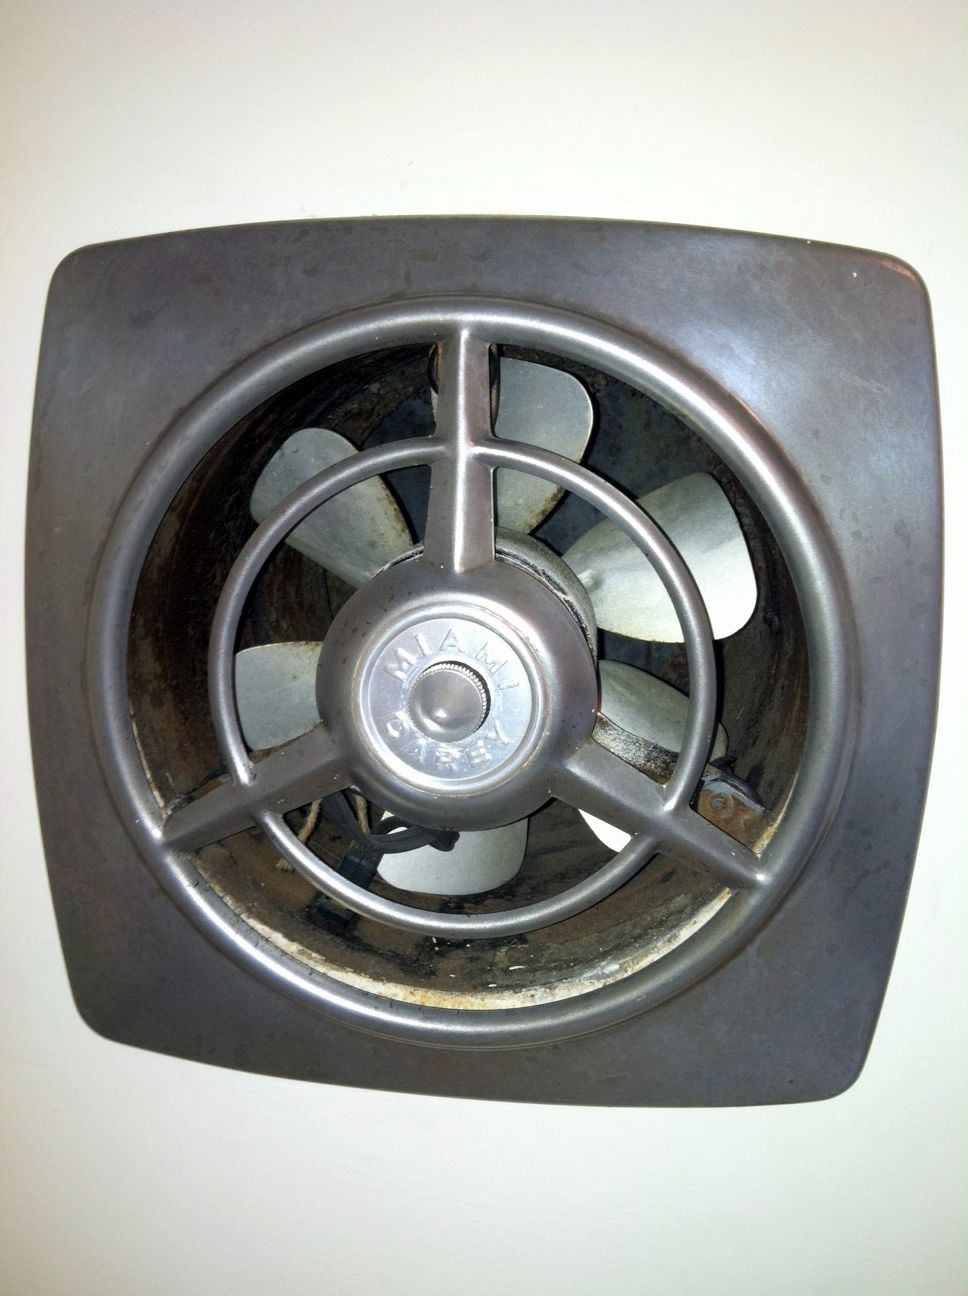 Restored Vintage Miami Carey Kitchen Vent Fan Unearthered From - Bathroom exhaust fan with pull chain for bathroom decor ideas